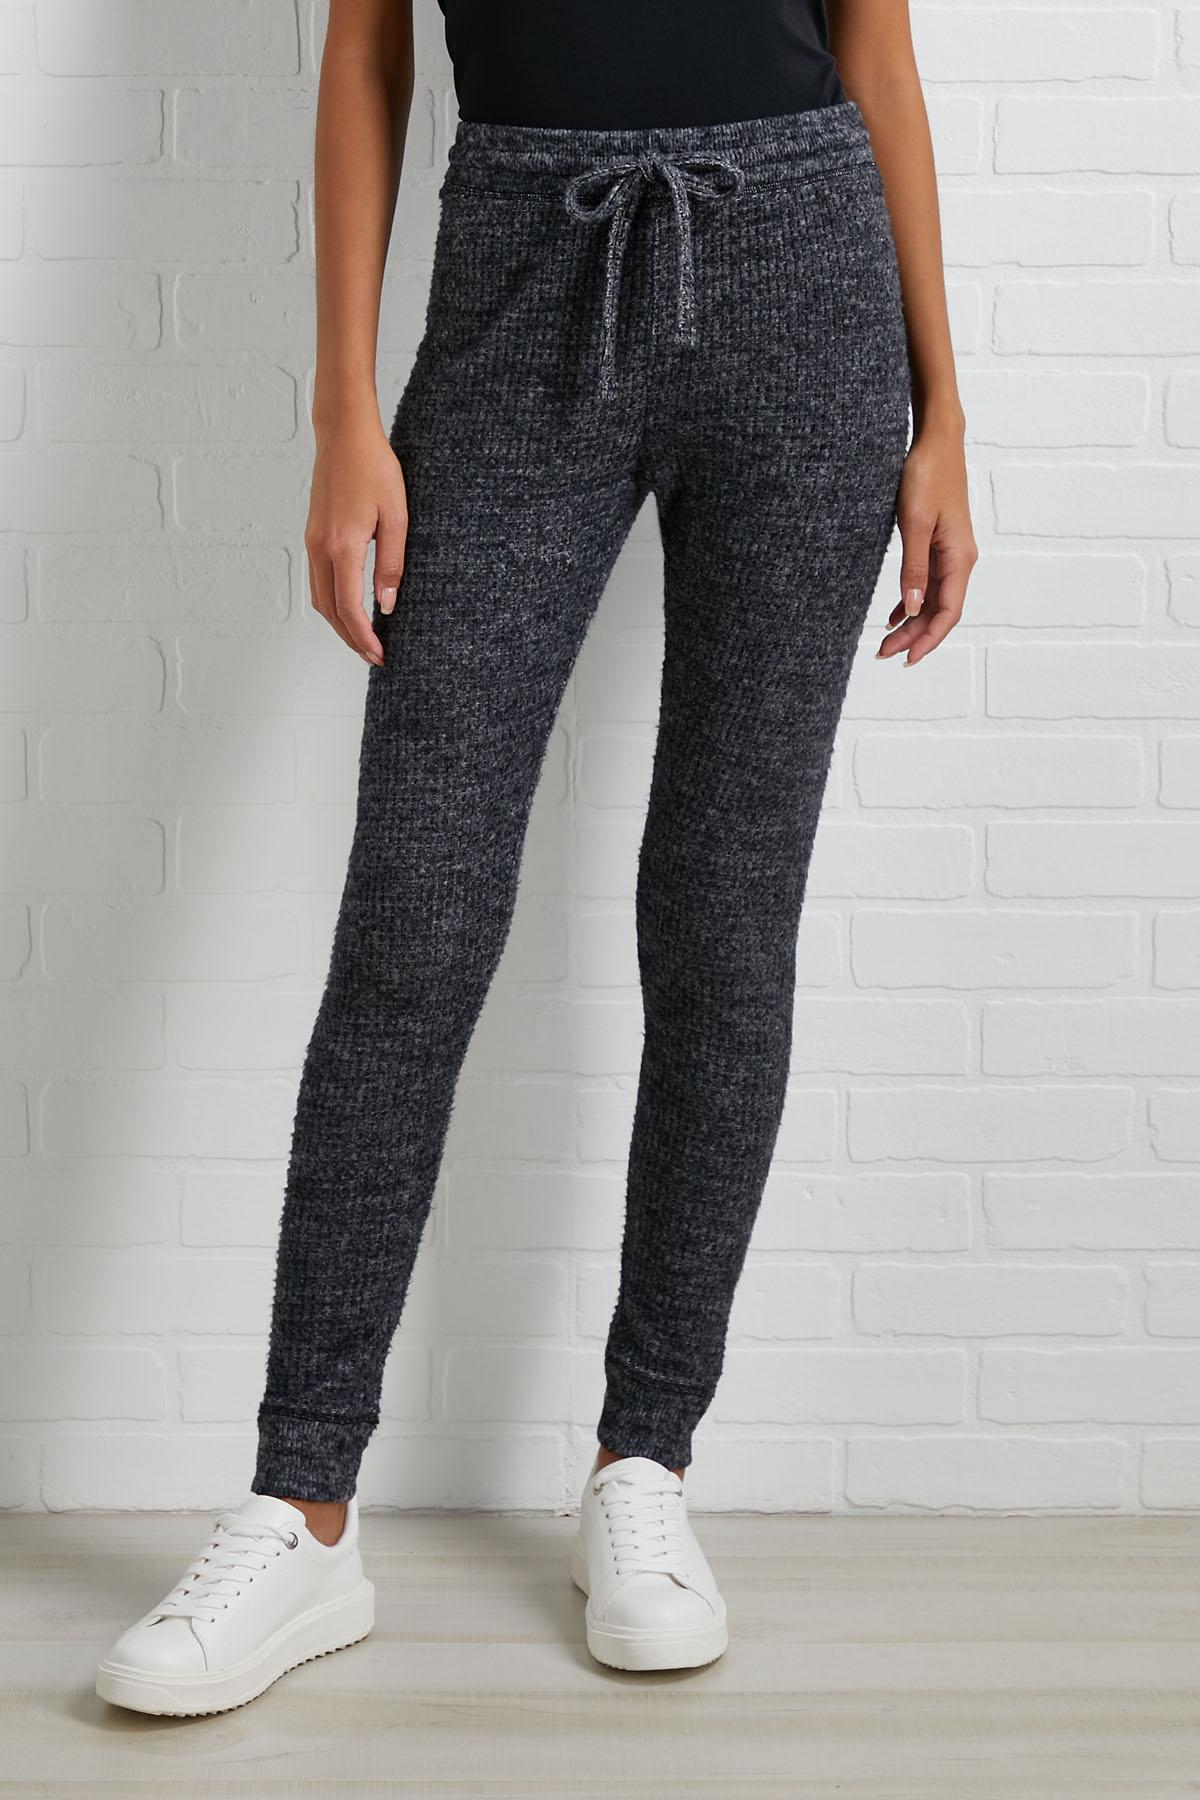 Chill Vibes Joggers